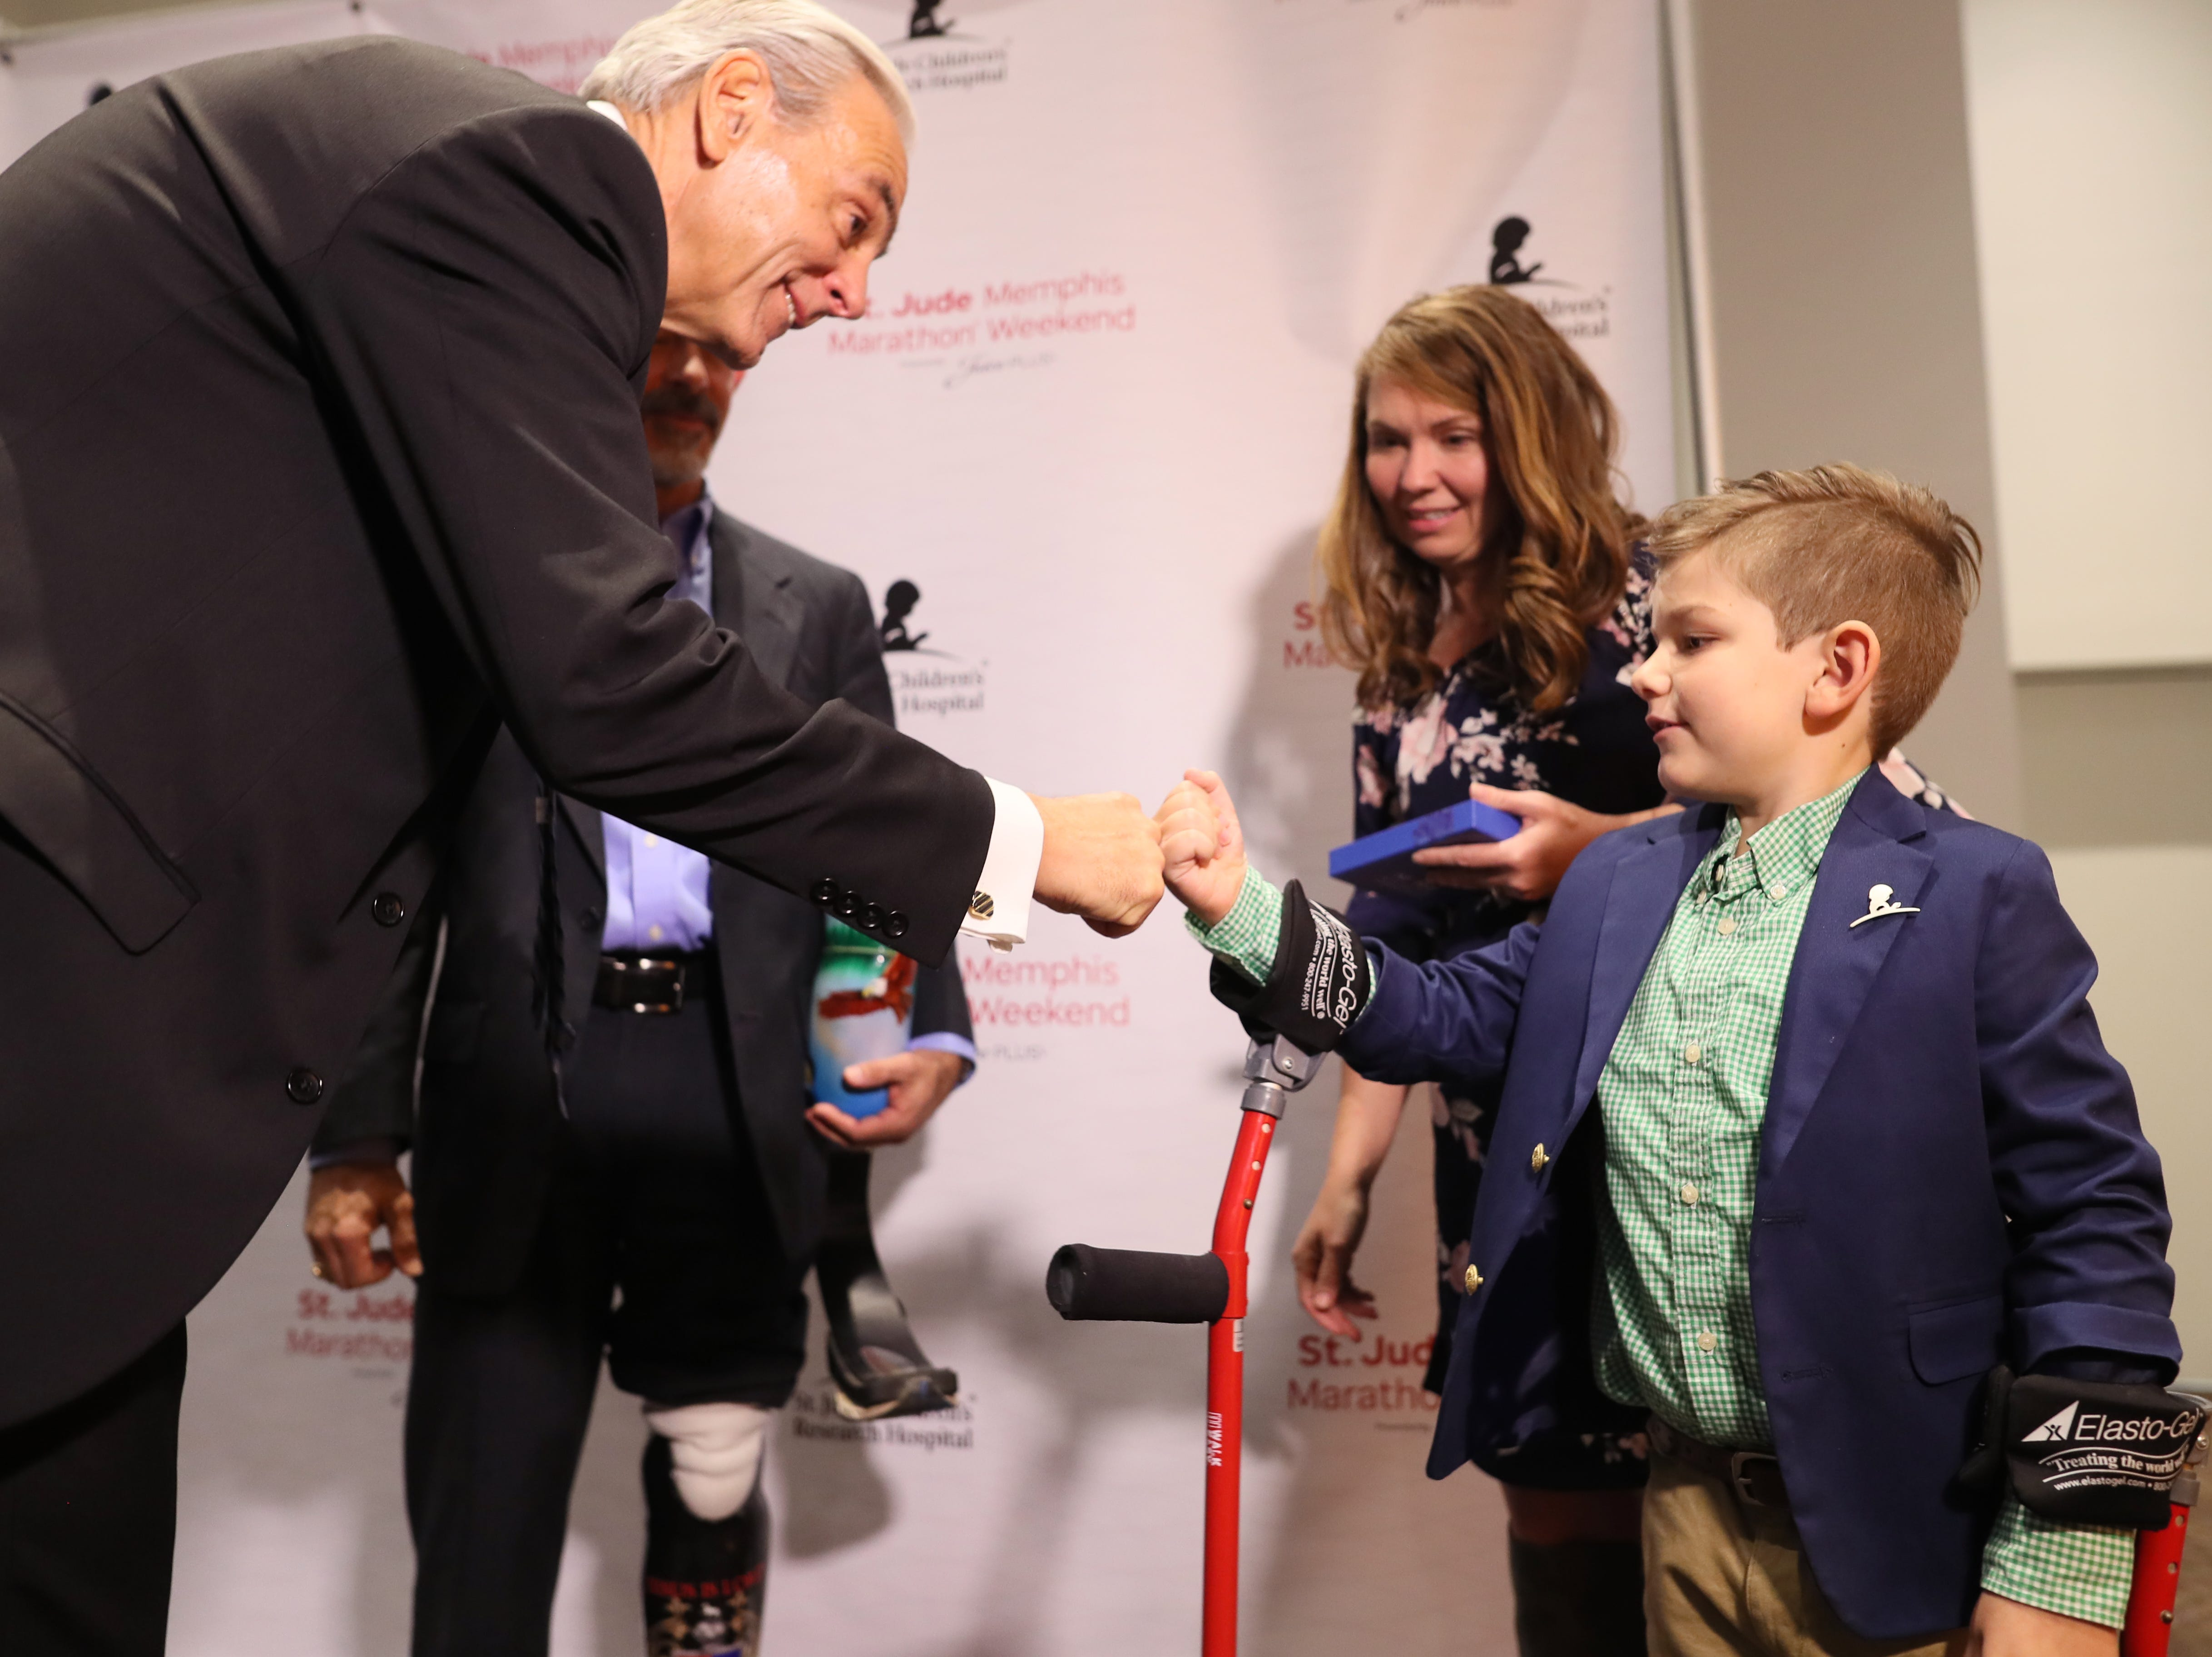 ALSAC President and CEO Rick Shadyac fist bumps Kael Hill, 6, during a press conference for the St. Jude Hero Among Us award at the Cook Convention Center on Thursday, Nov. 29, 2018.